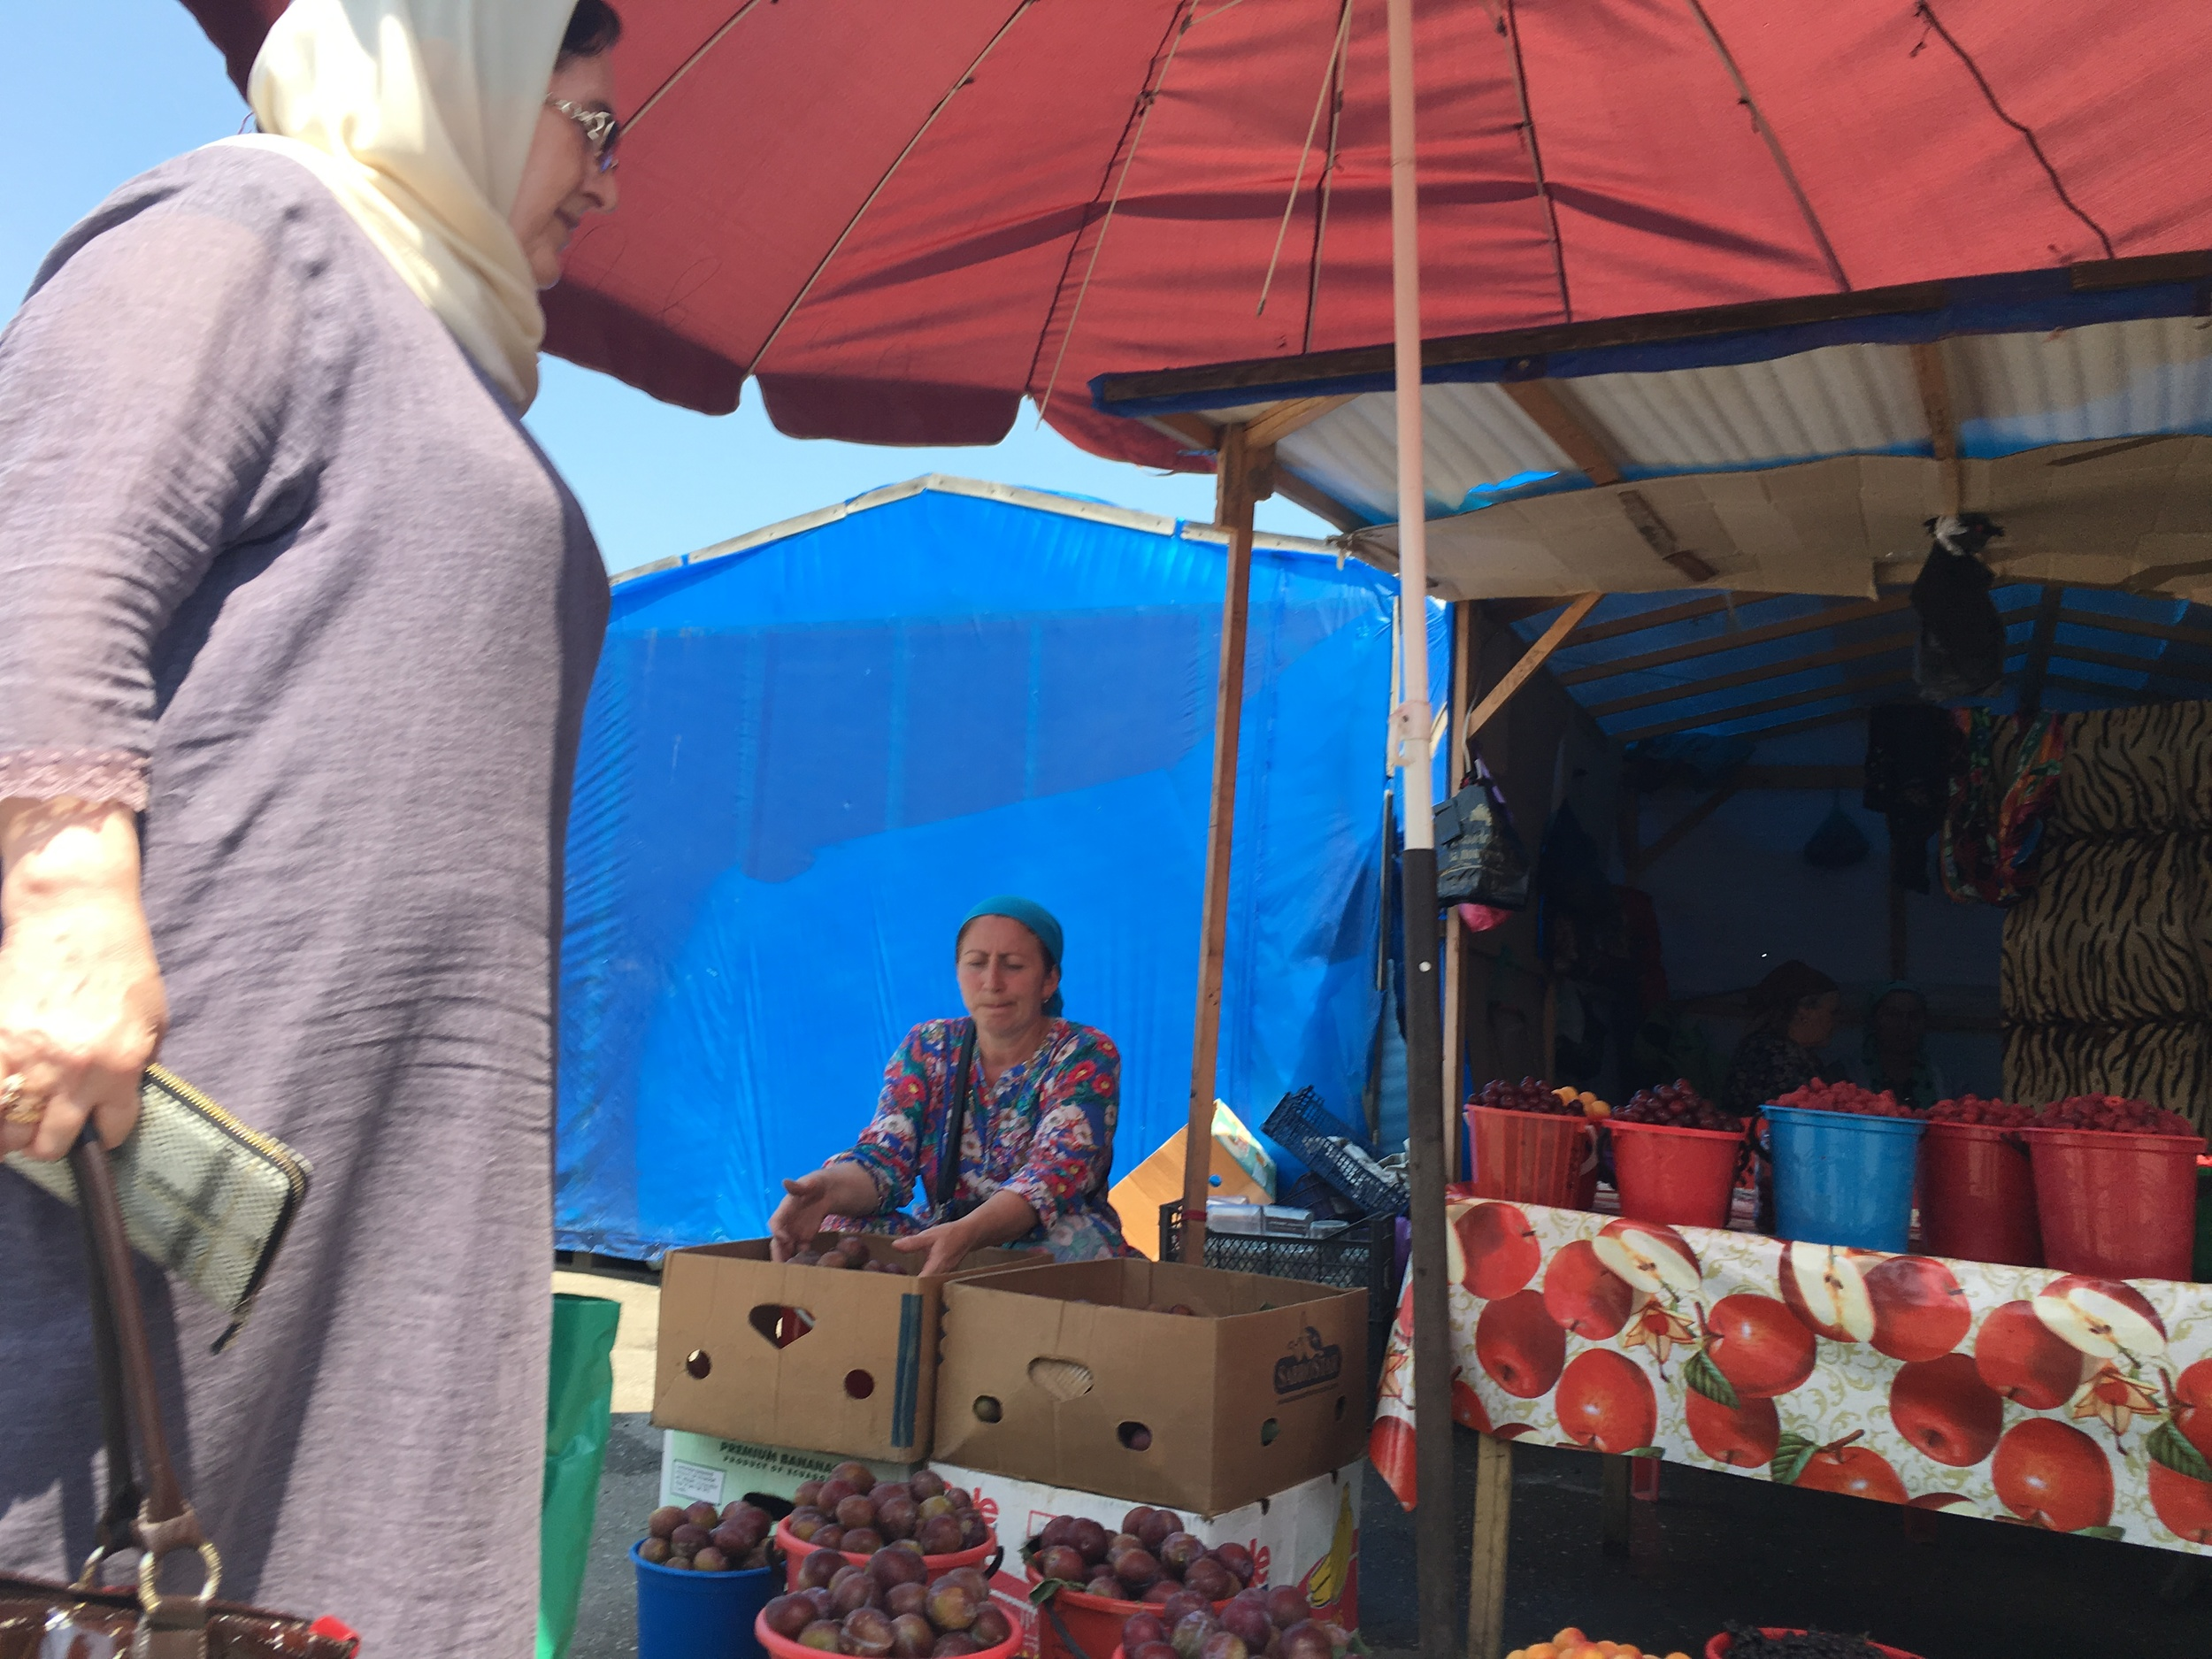 A woman selling fruit at a market in Grozny, Chechnya.